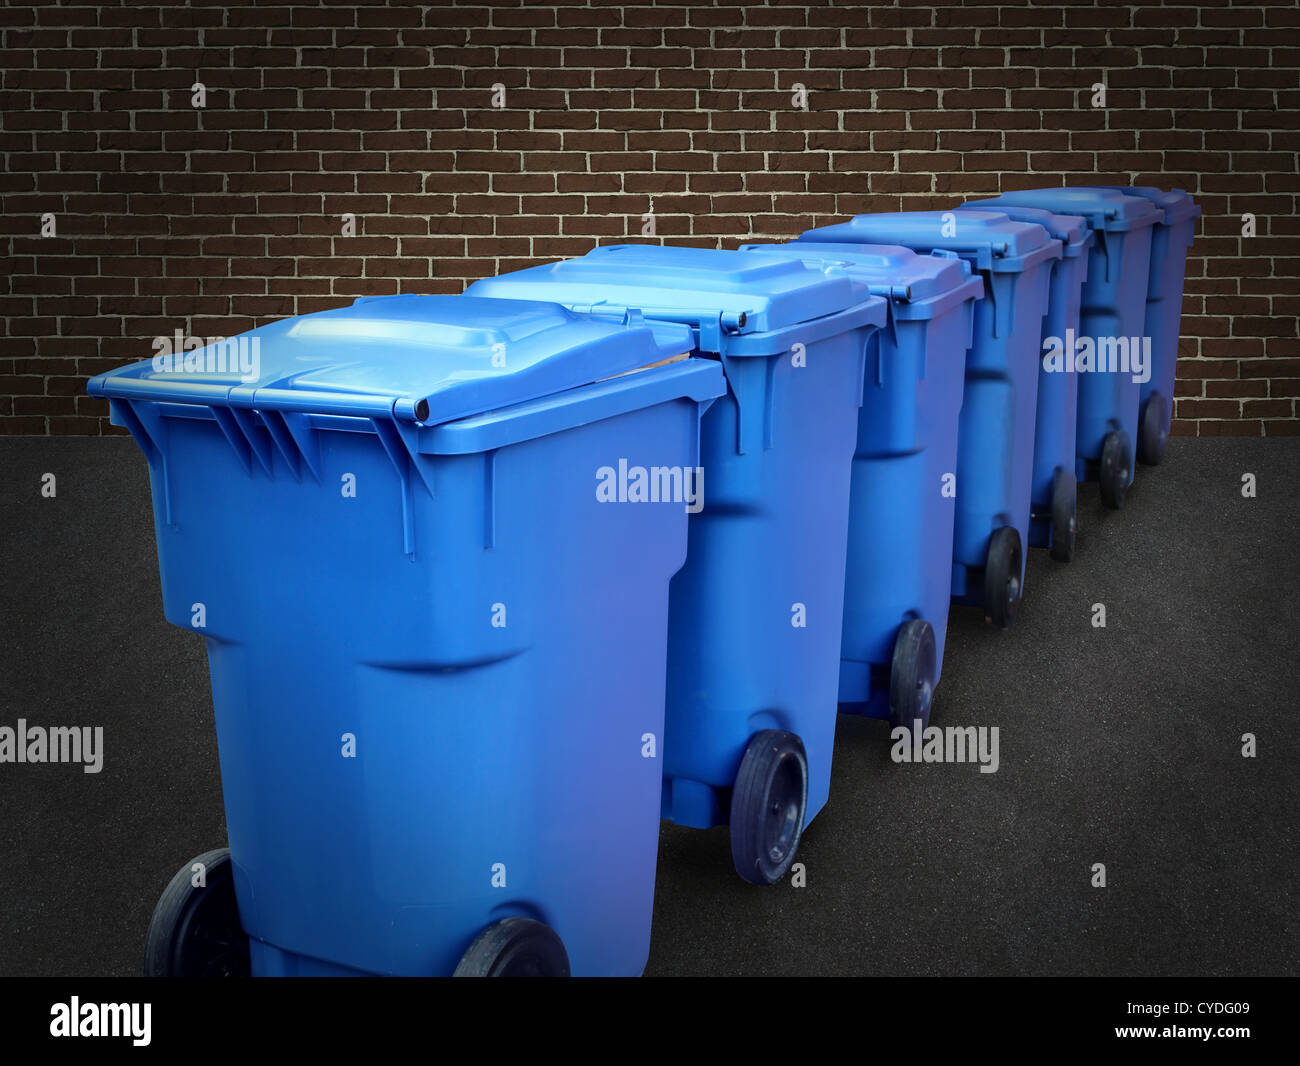 Recycle bins in a group made of commercial size blue plastic containers in a city street back alley against a brick Stock Photo